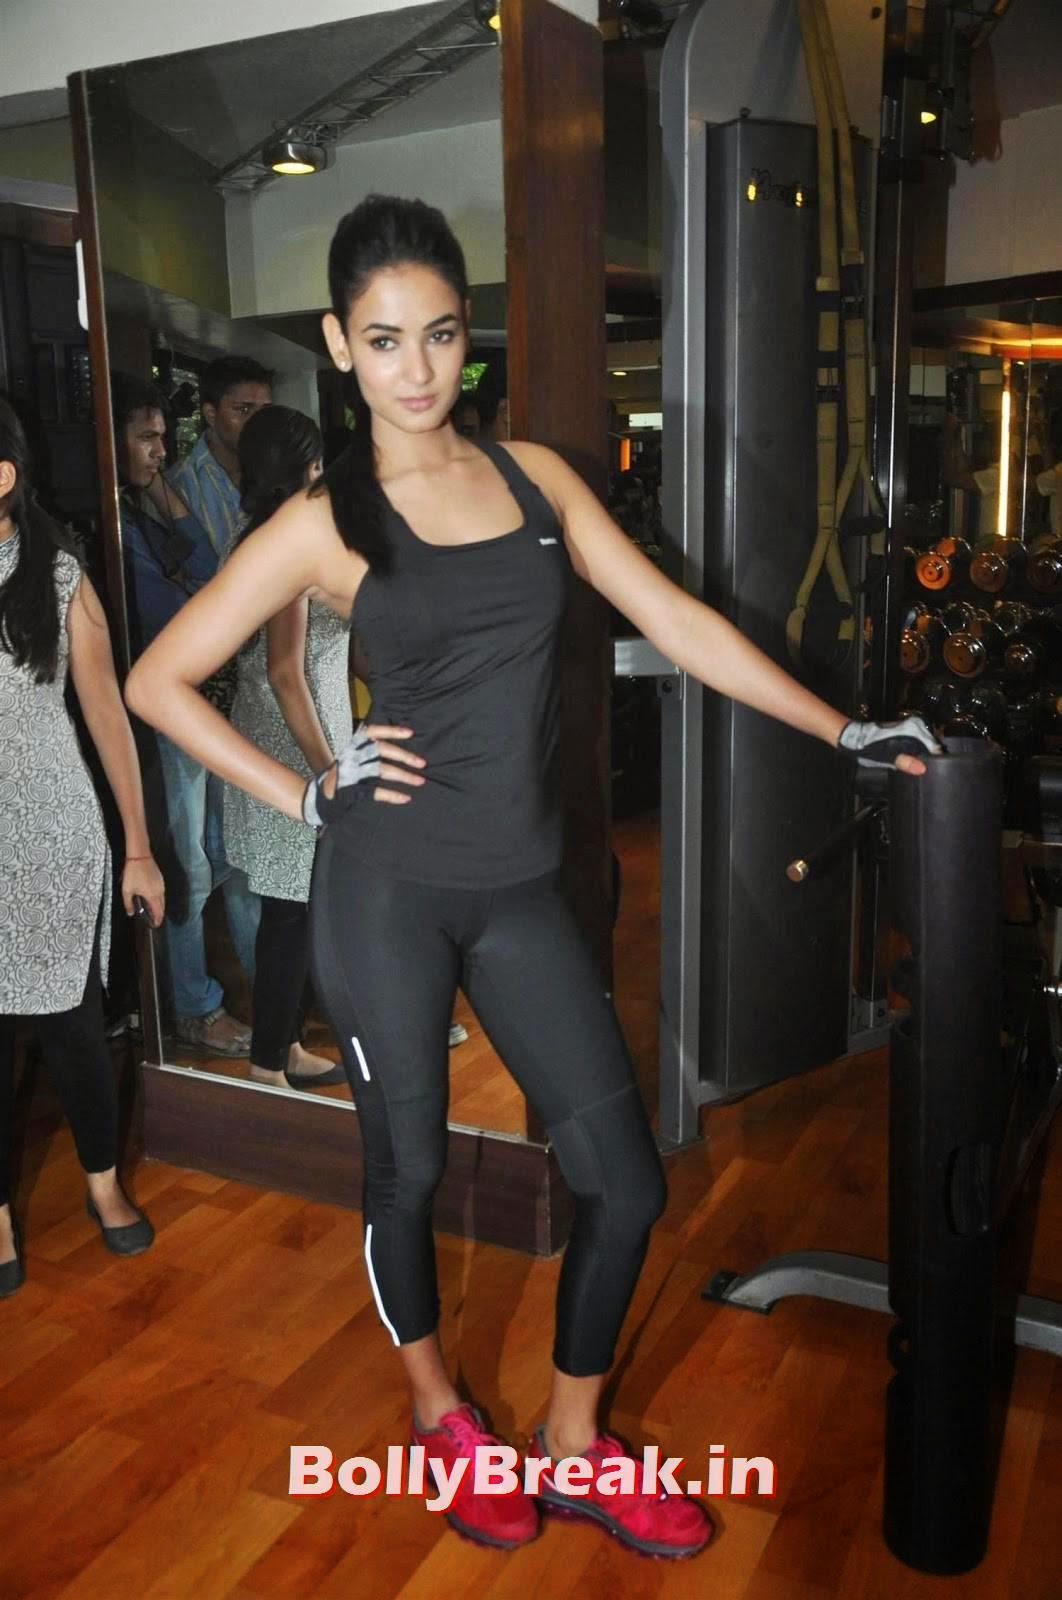 , Sonal Chauhan Gym Workout Hot Photos in Black Tight Dress